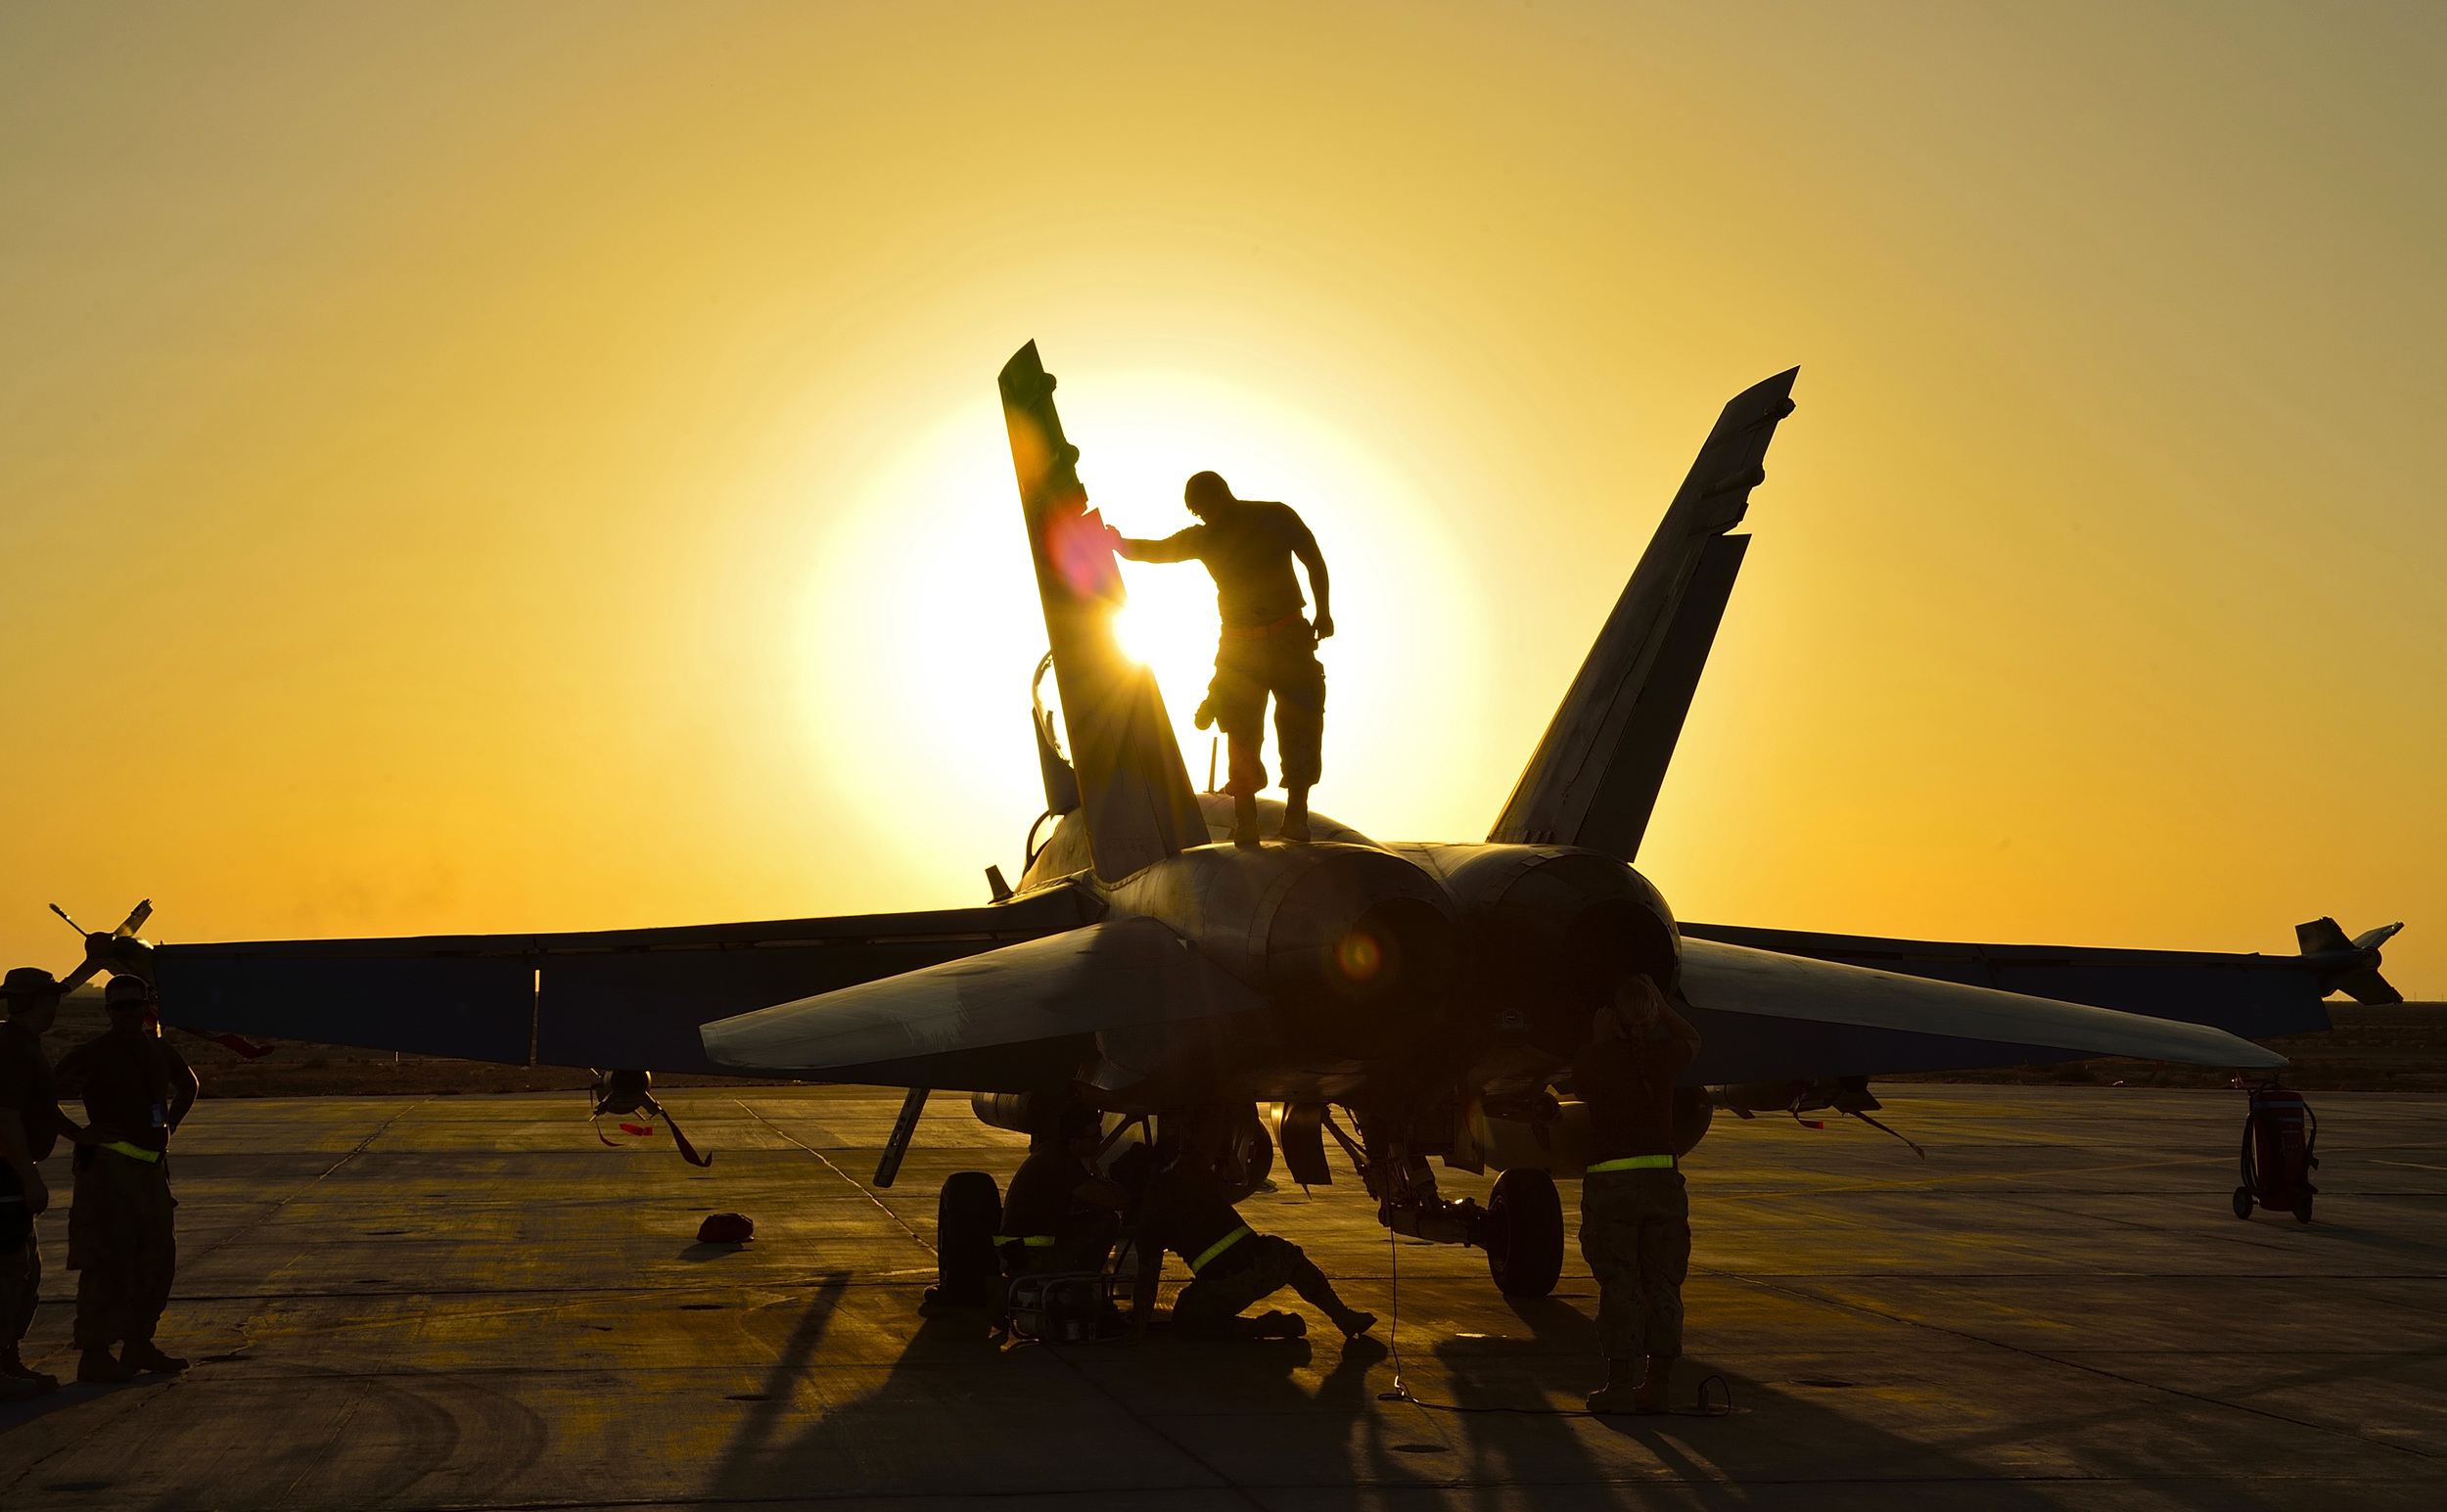 Royal Canadian Air Force ground crew perform post flight checks on a CF-18 fighter jet in Kuwait after a sortie over Iraq during Operation IMPACT on November 3, 2014. (Combat Camera)